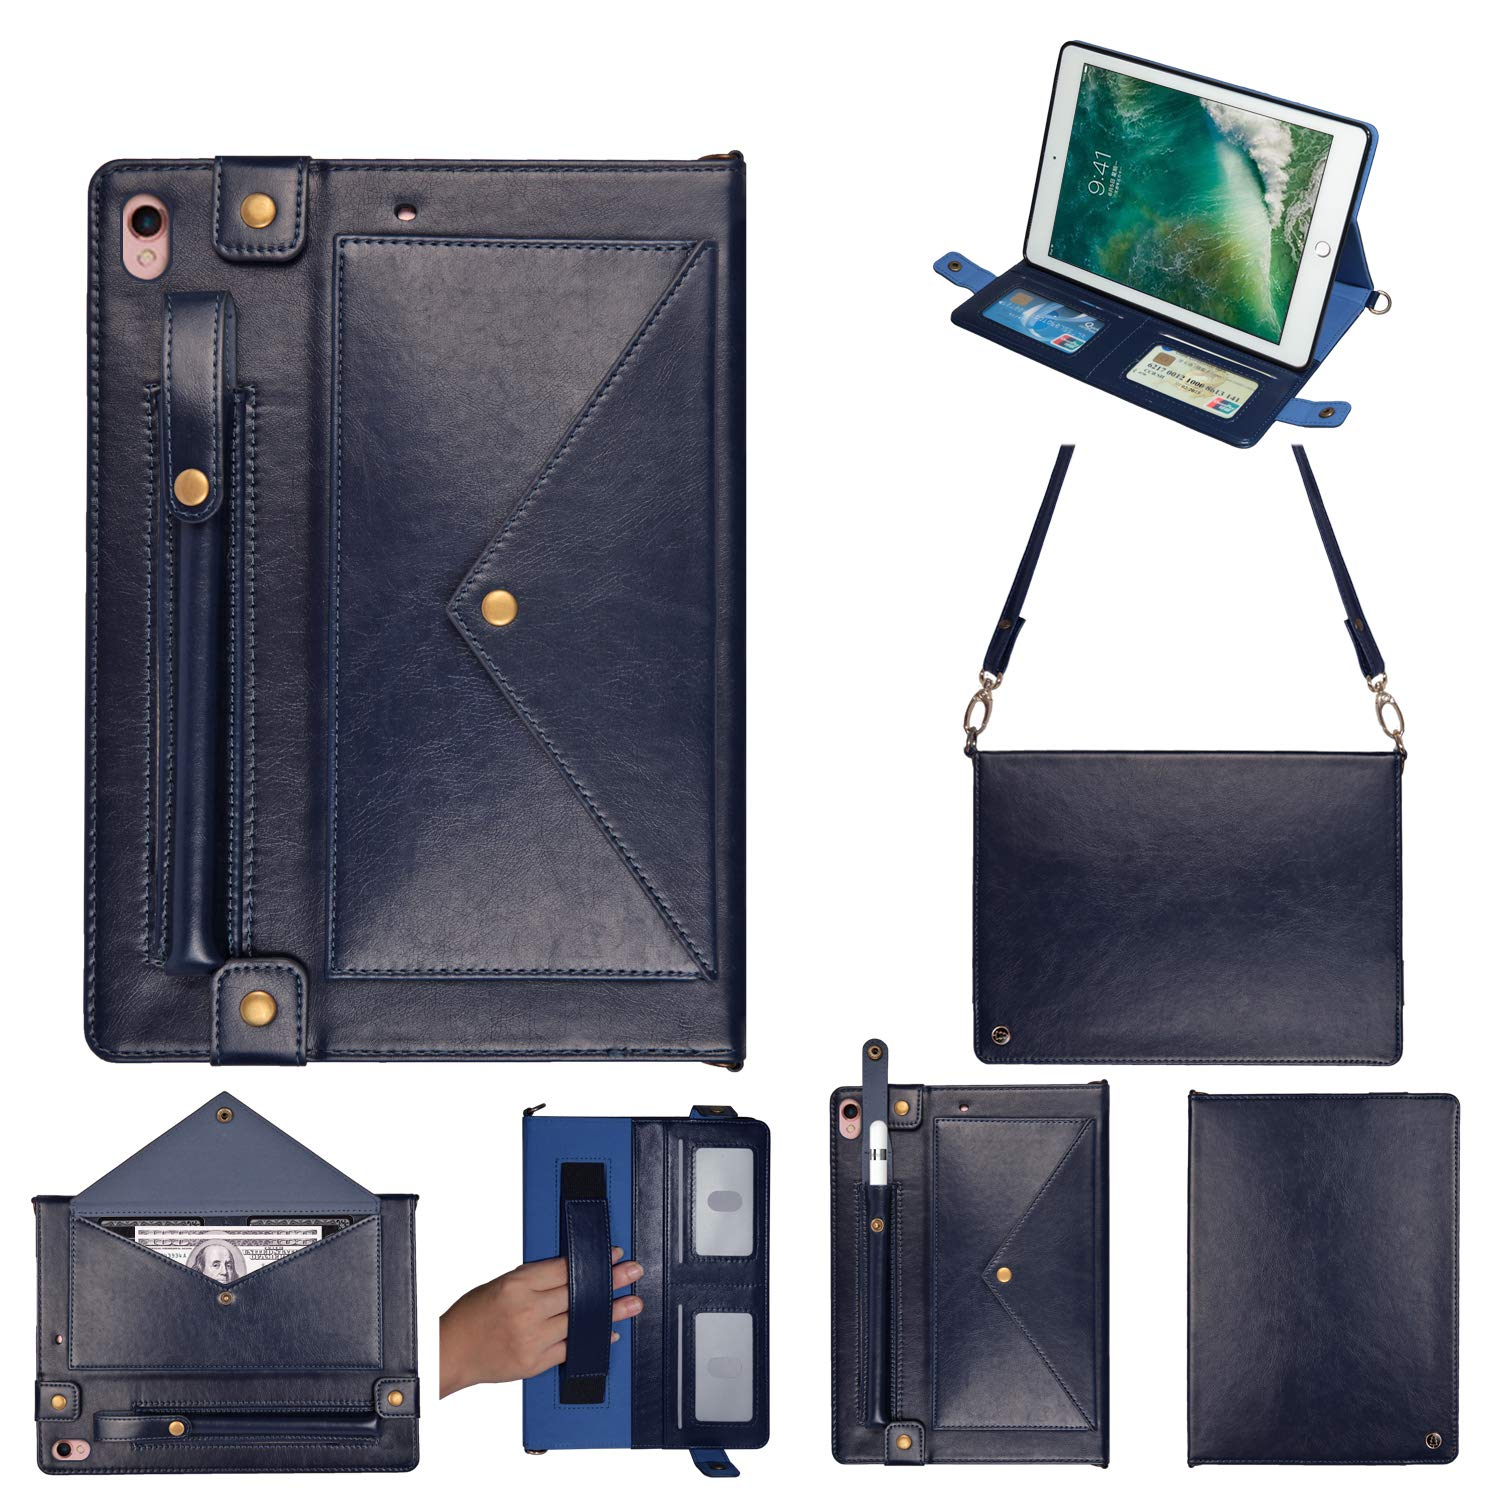 MeiLiio for iPad Pro 10.5''Wallet Case Wallet File Folio Pocket PU Leather Hangbag Shell with Hand Strap Magnetic Stand Multi Function Sleeve Protective Cover for iPad Air 3 Women&Girl (Dark Blue) by MeiLiio